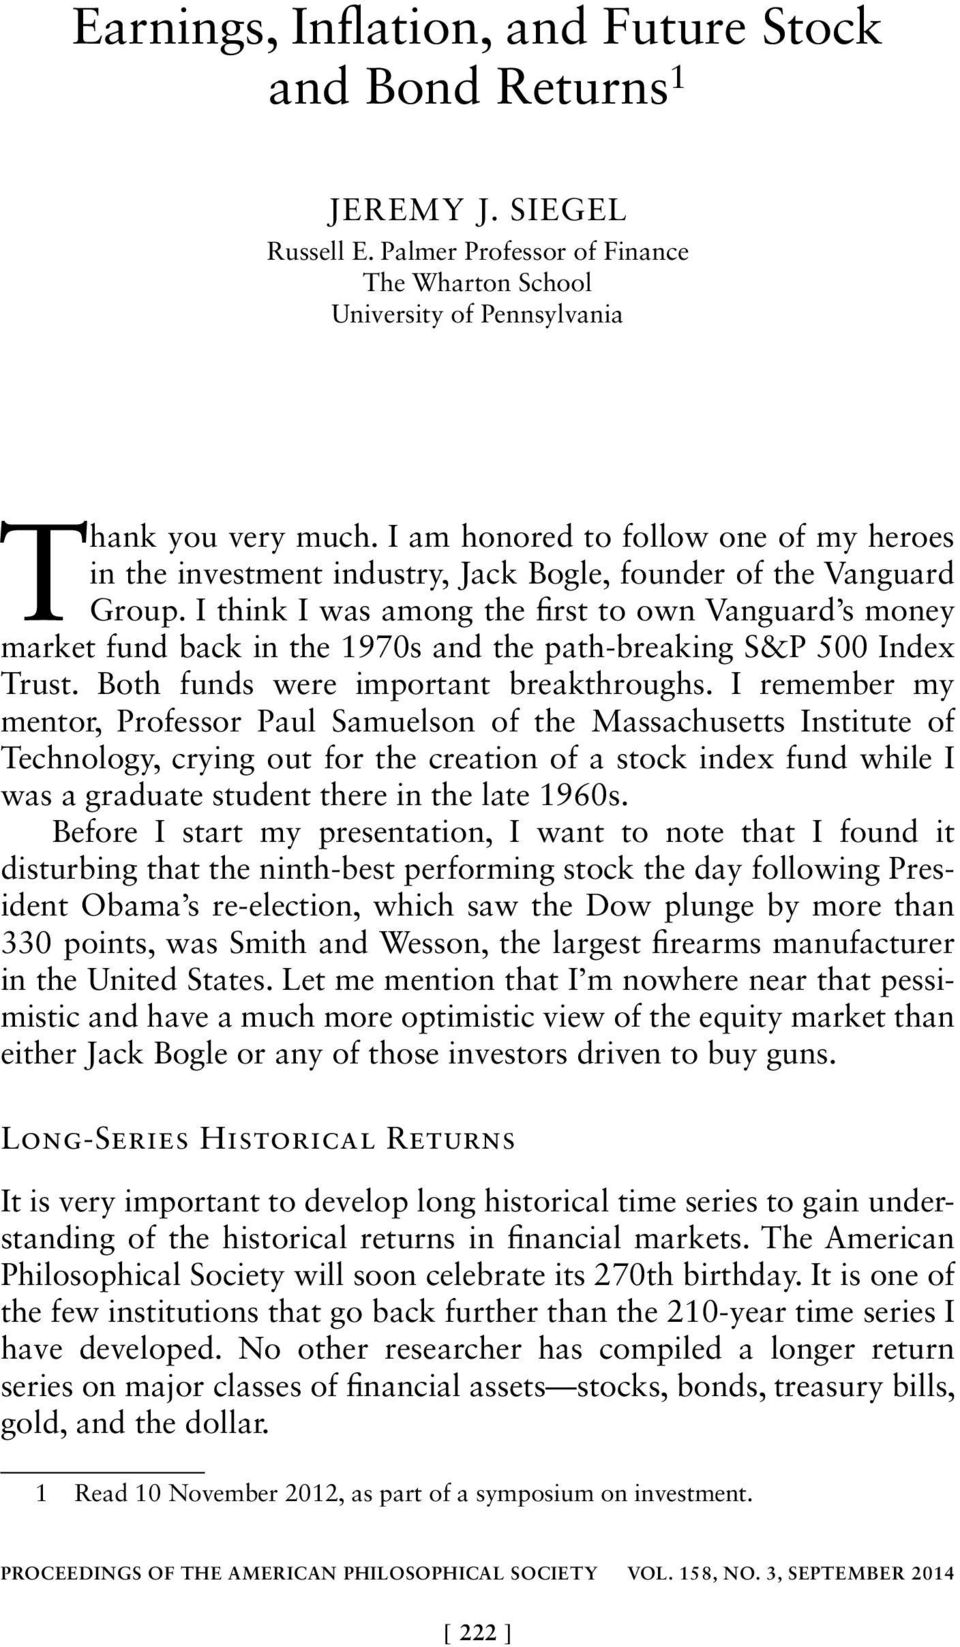 I think I was among the first to own Vanguard s money market fund back in the 1970s and the path-breaking S&P 500 Index Trust. Both funds were important breakthroughs.